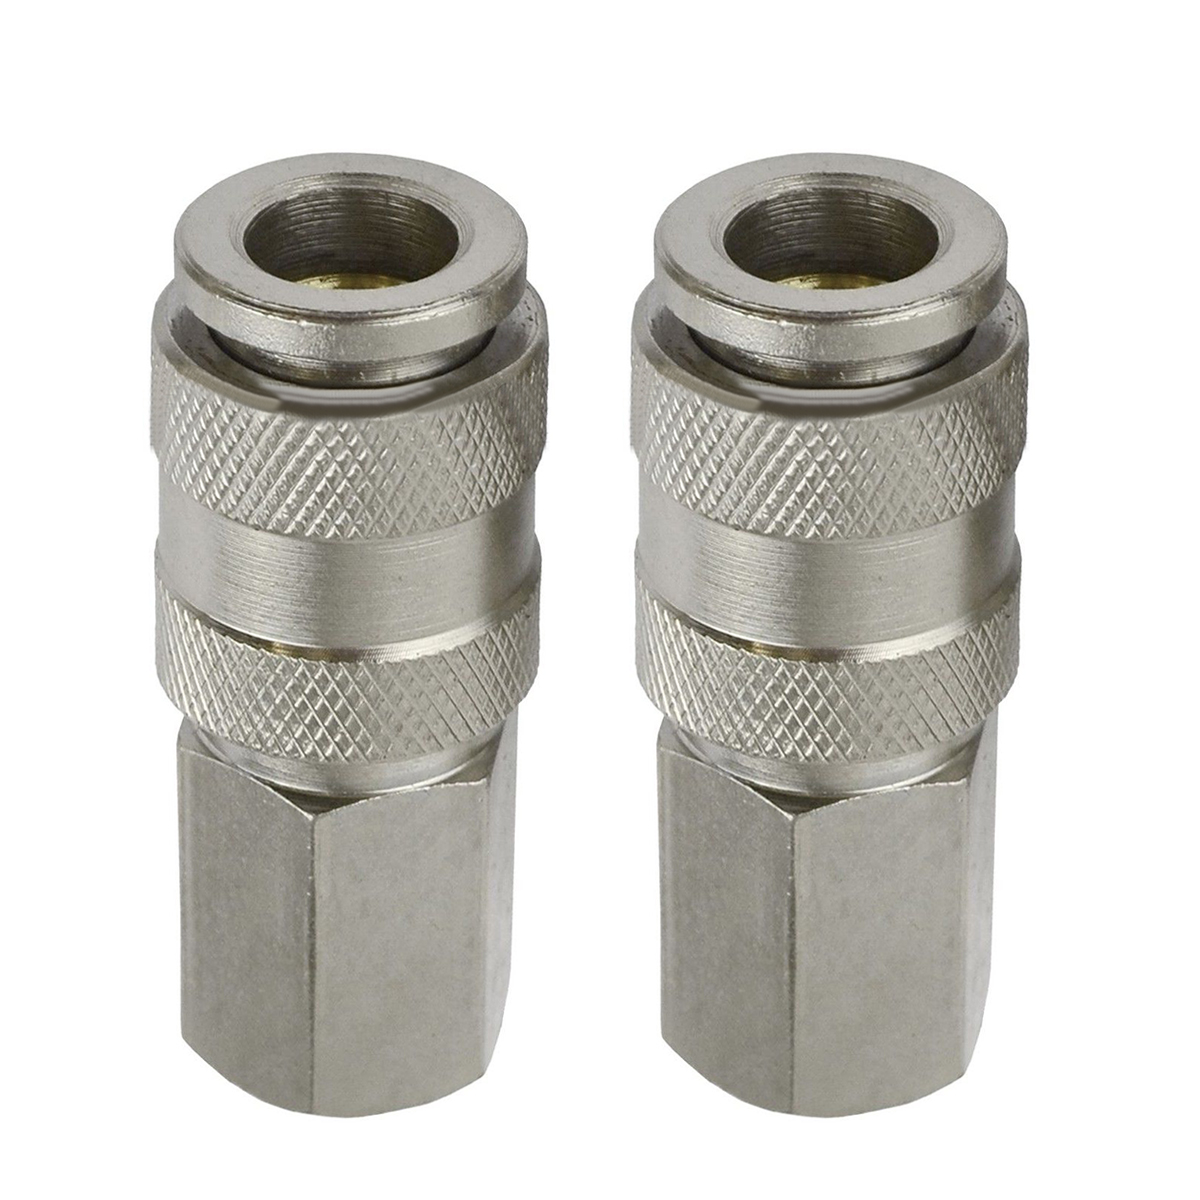 2pcs Mayitr Euro Air Line Hose Connector 1/4 BSP Female/Male Thread Quick Release Fitting 4 pcs 3 4pt male to 1 2npt female thread air pneumatic tube fitting connector